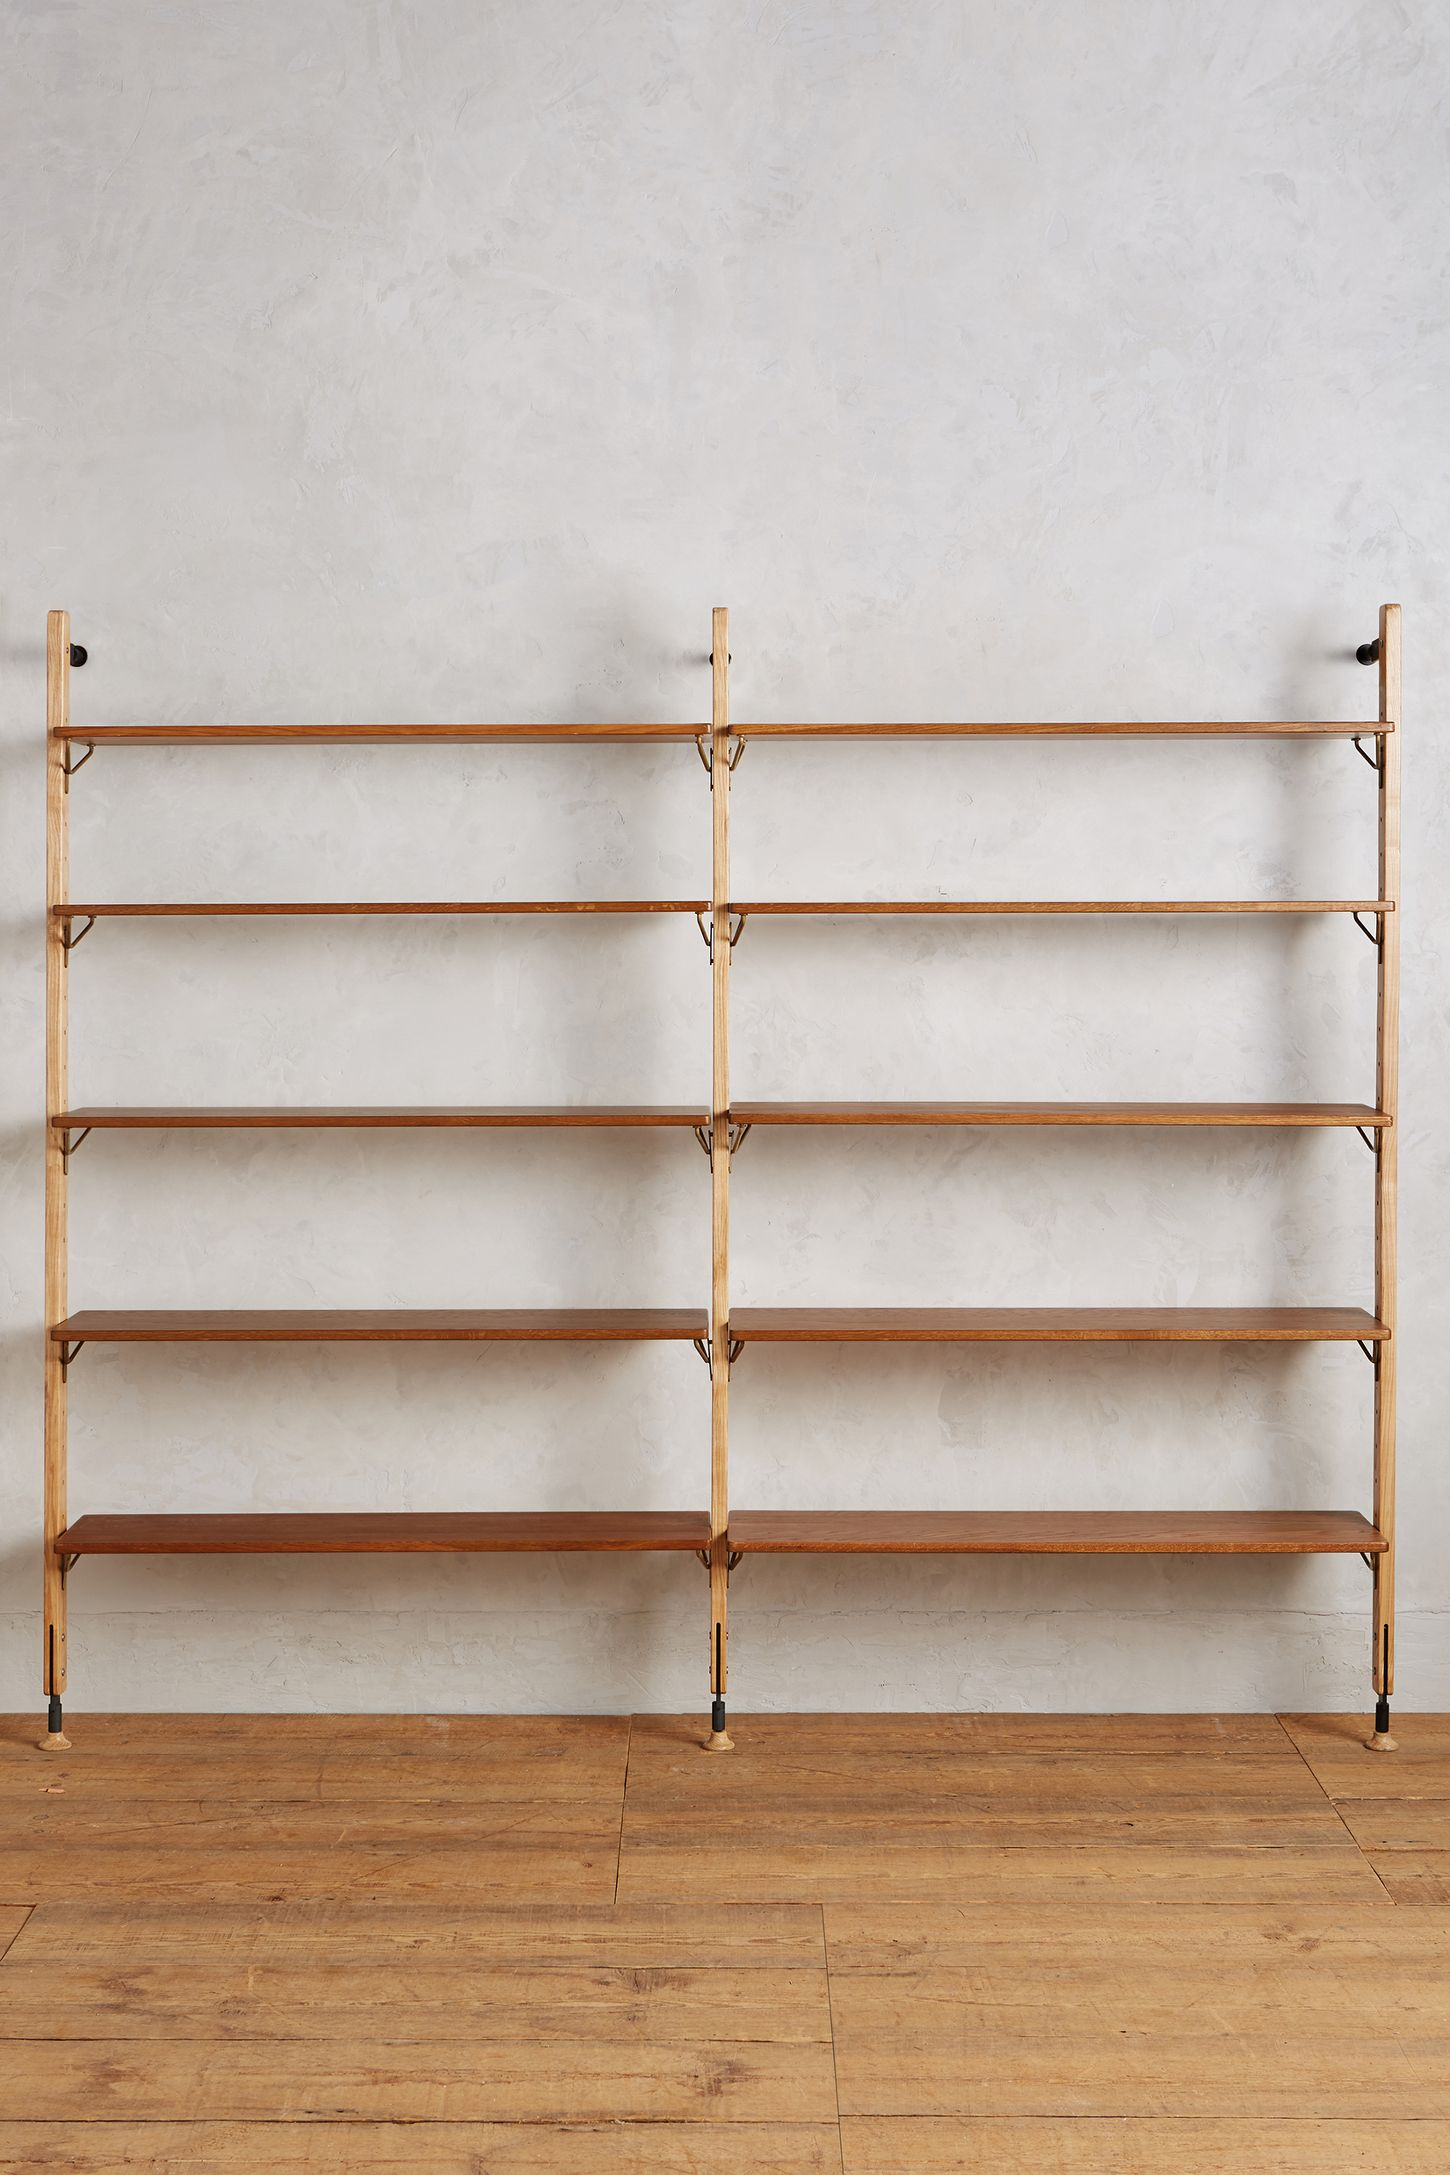 or shelves units com and office systems shelf shelving free system home unit open regalraum stackable maxx white uk oak